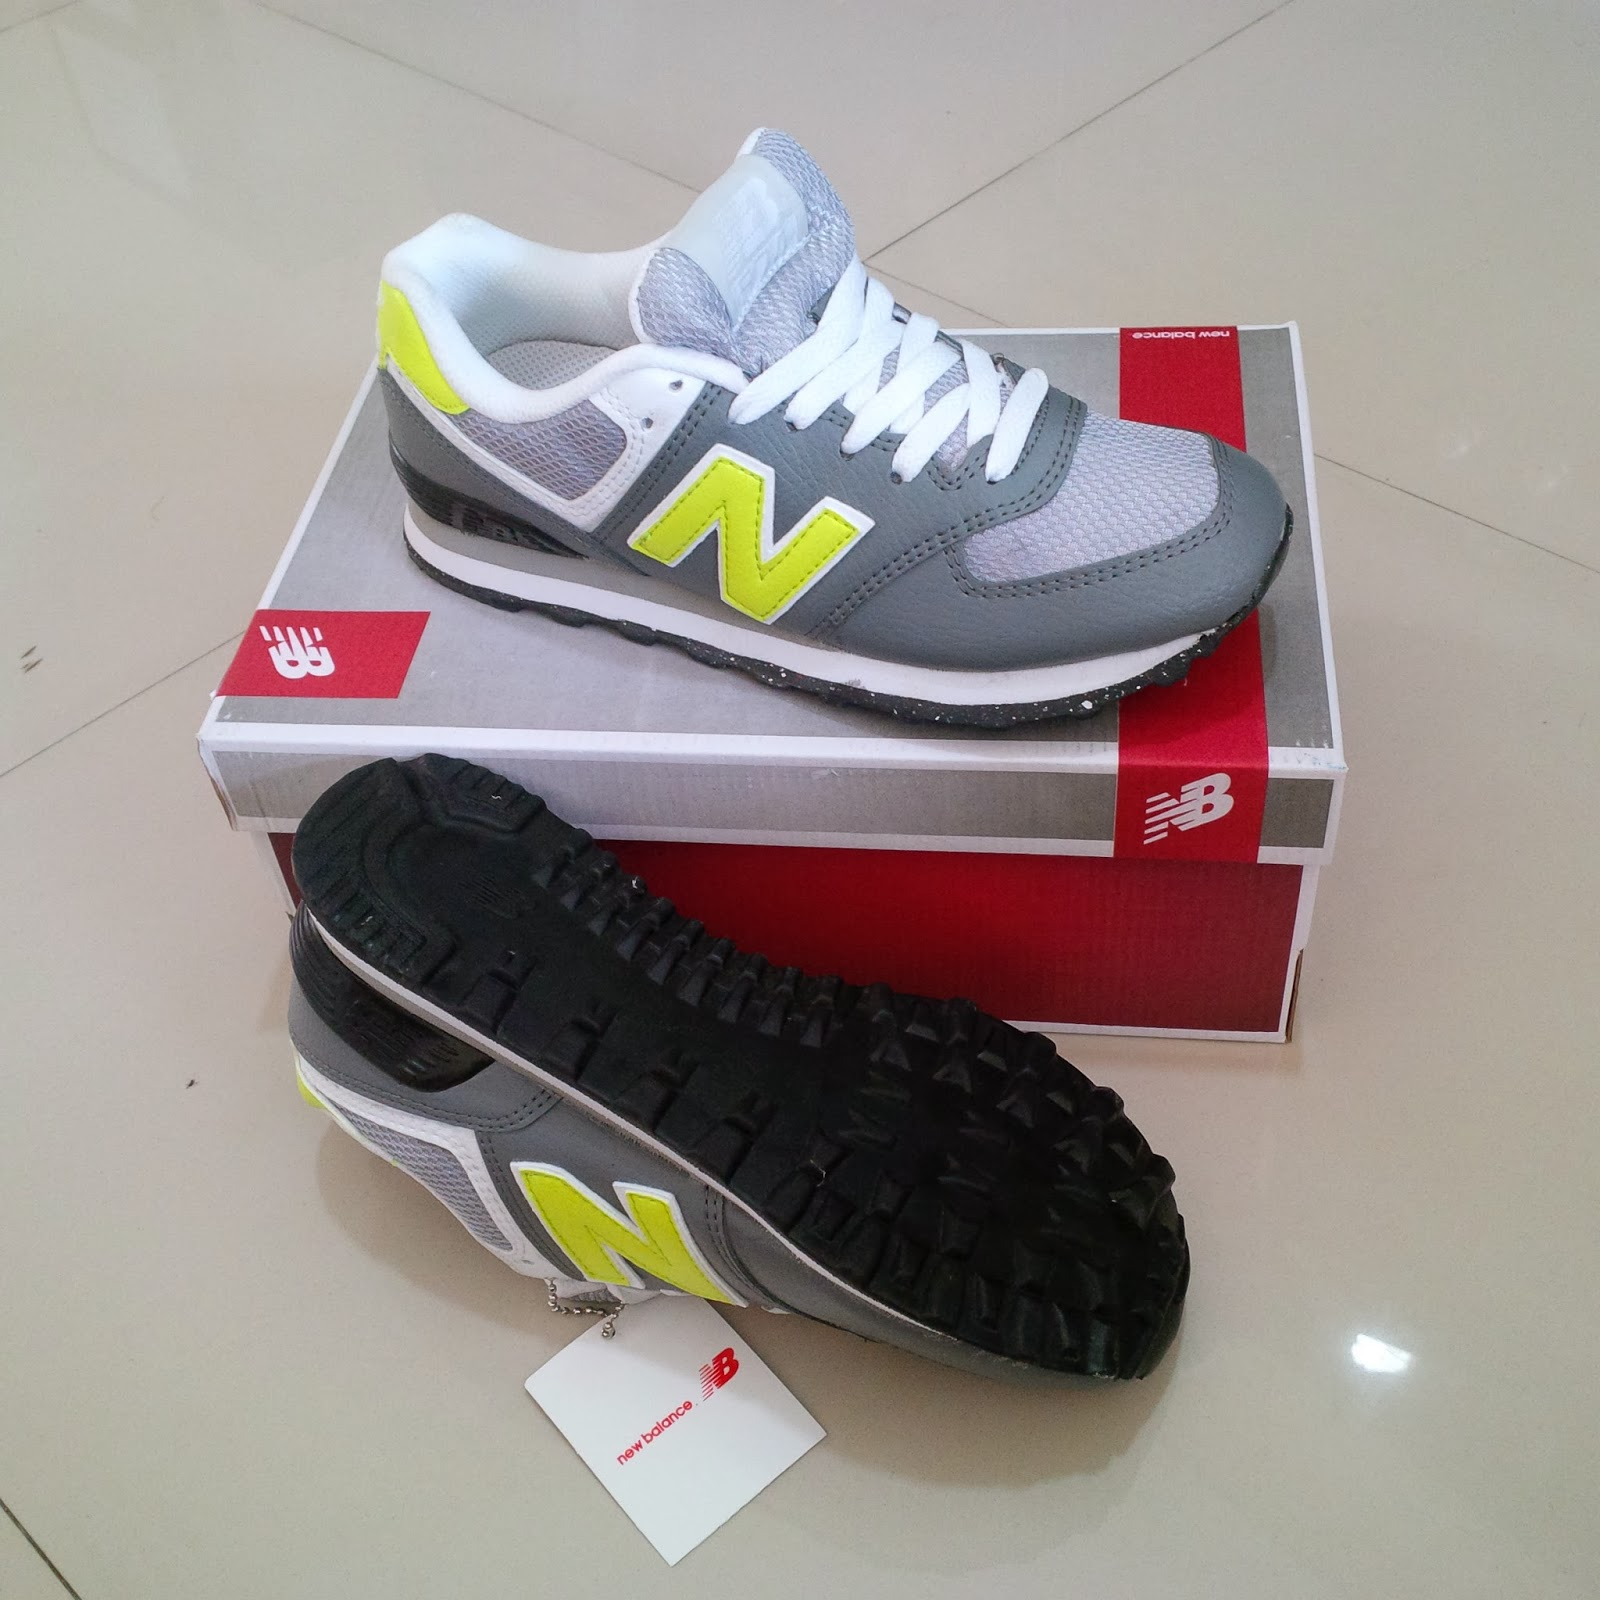 New Balance Models Model Sepatu New Balance